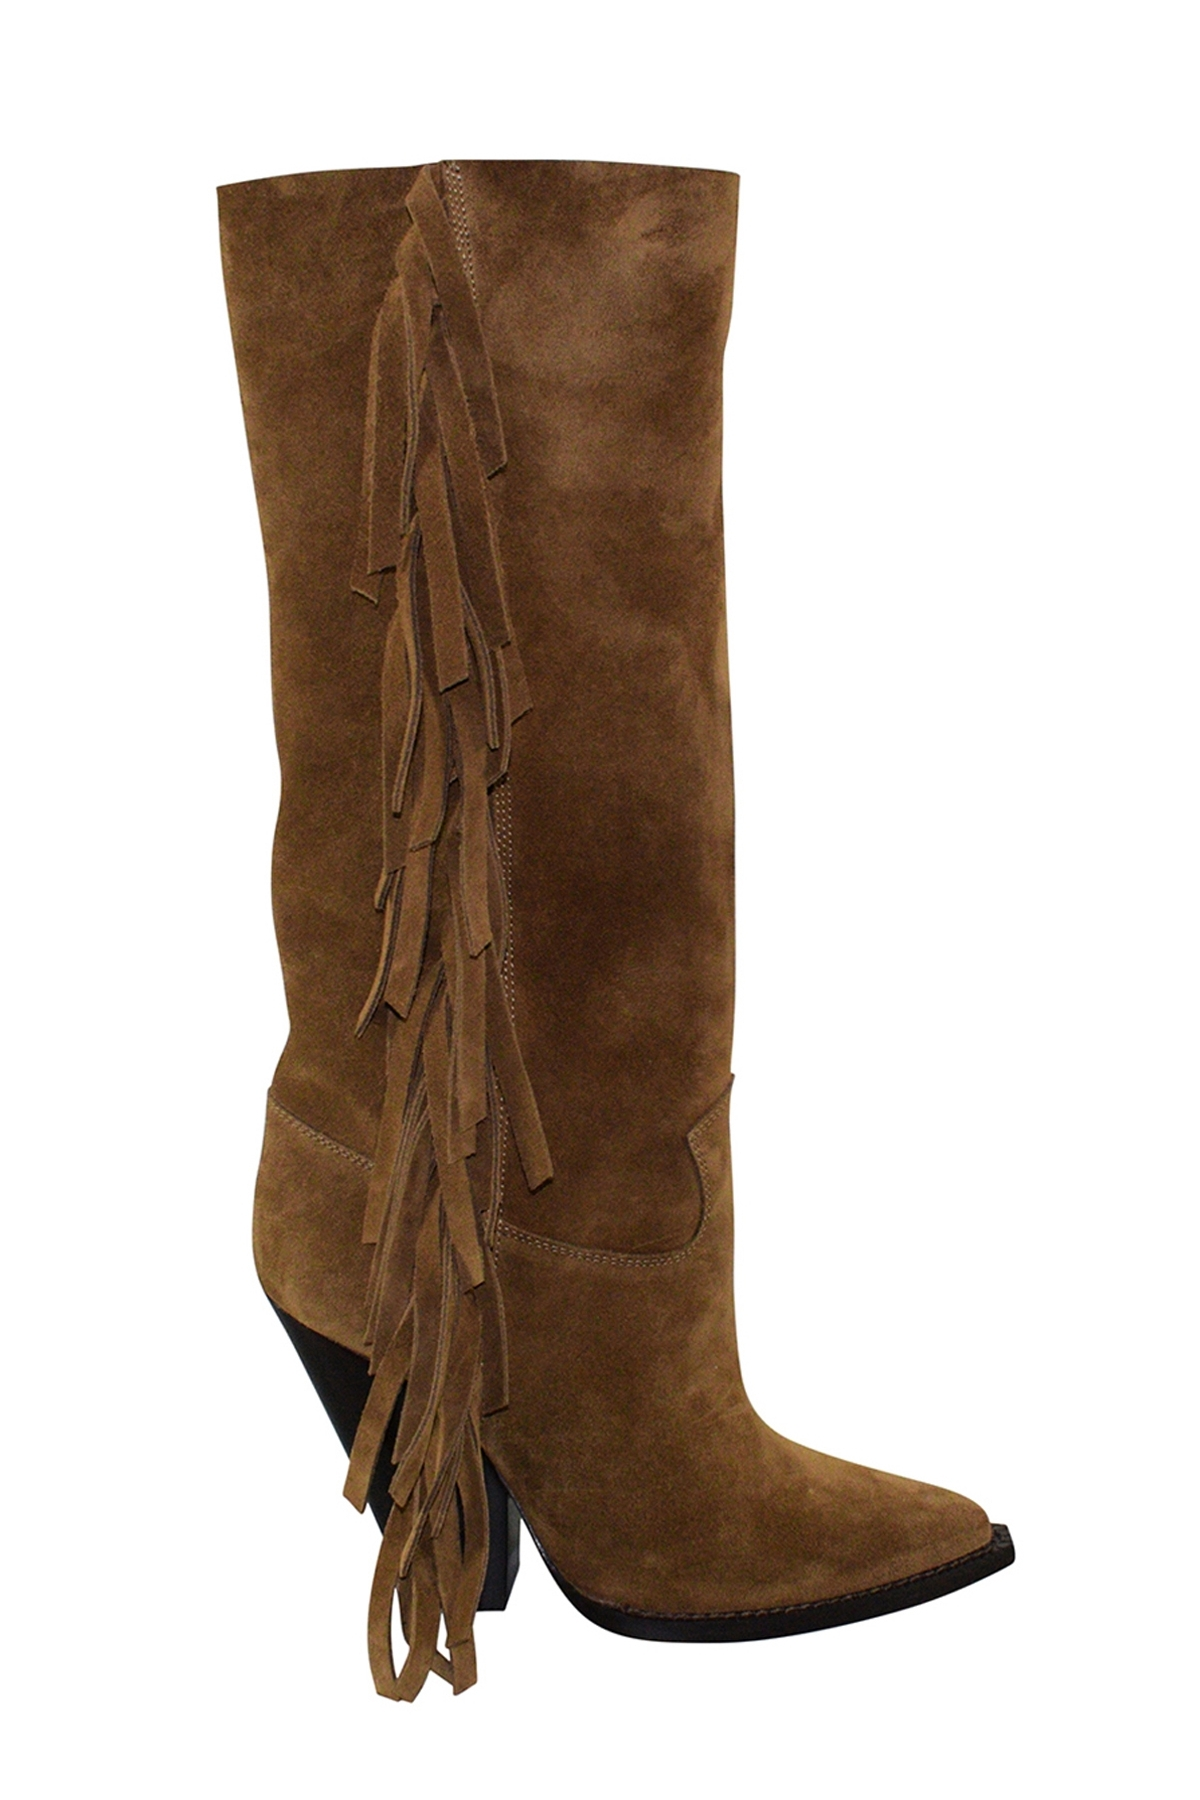 Luxury shoes for women - Saint Laurent fringes boots in camel suede